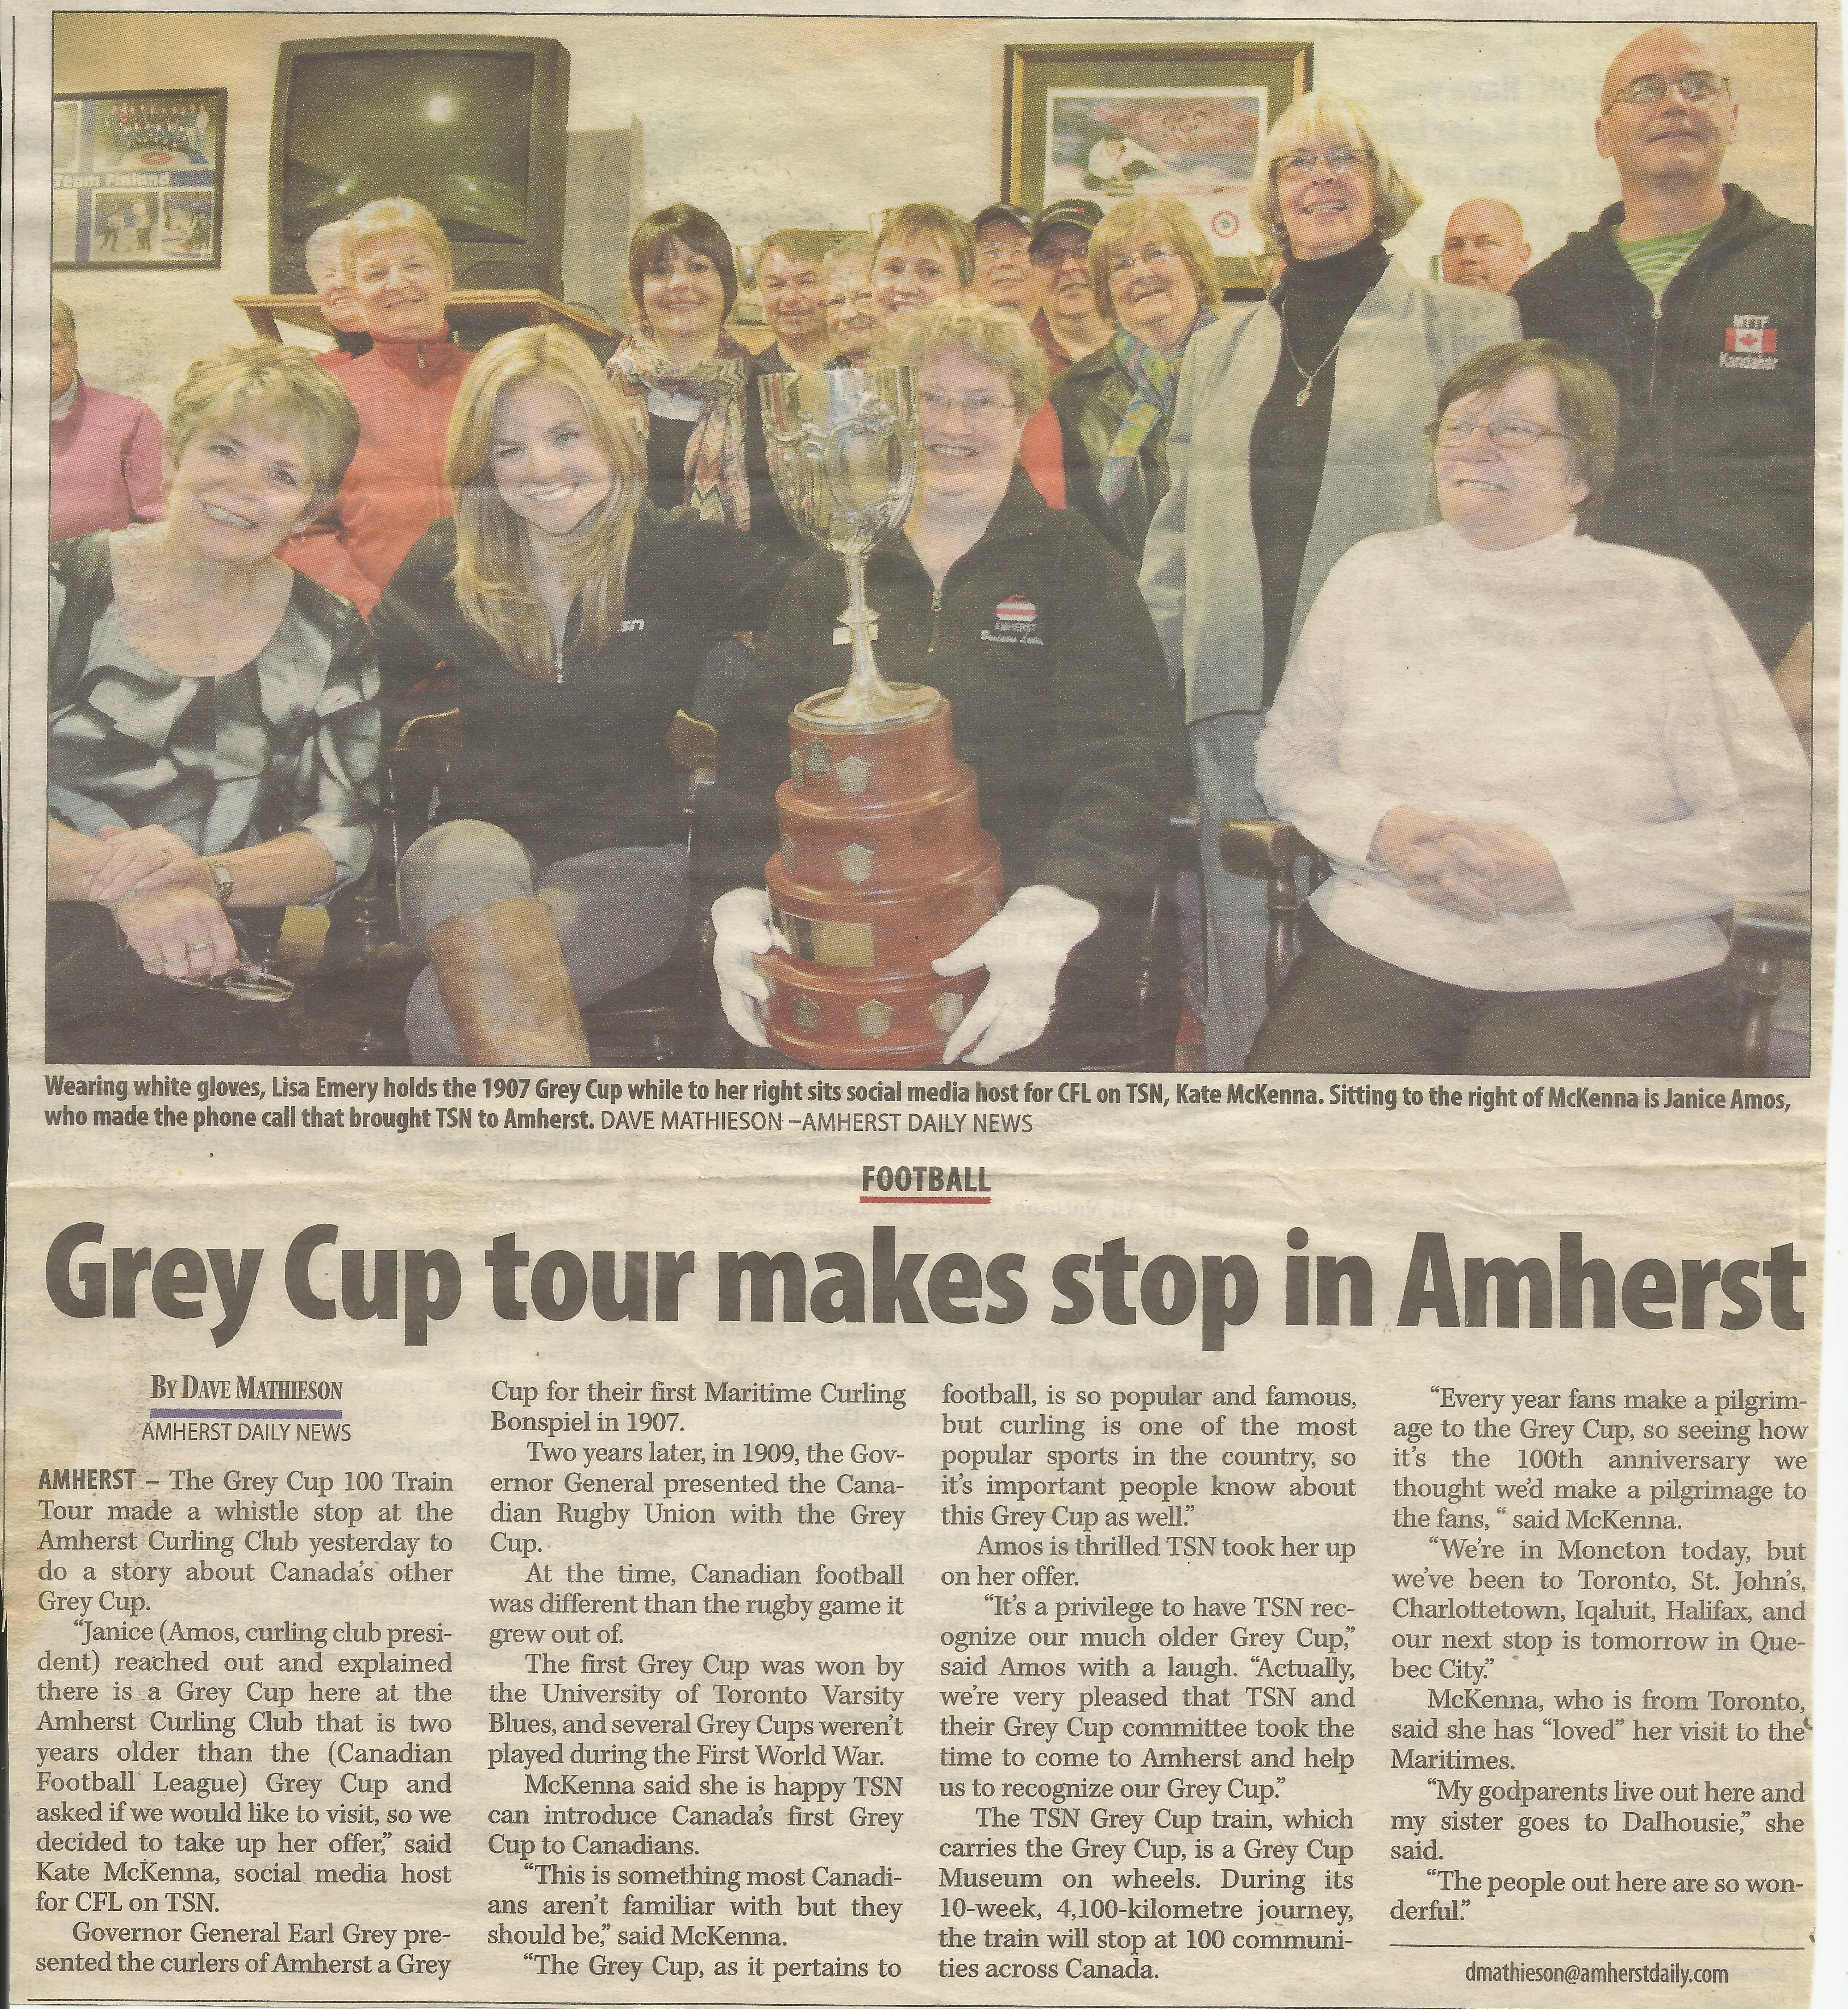 Amherst Grey Cup of Curling - Grey Cup Tour makes stop in Amherst